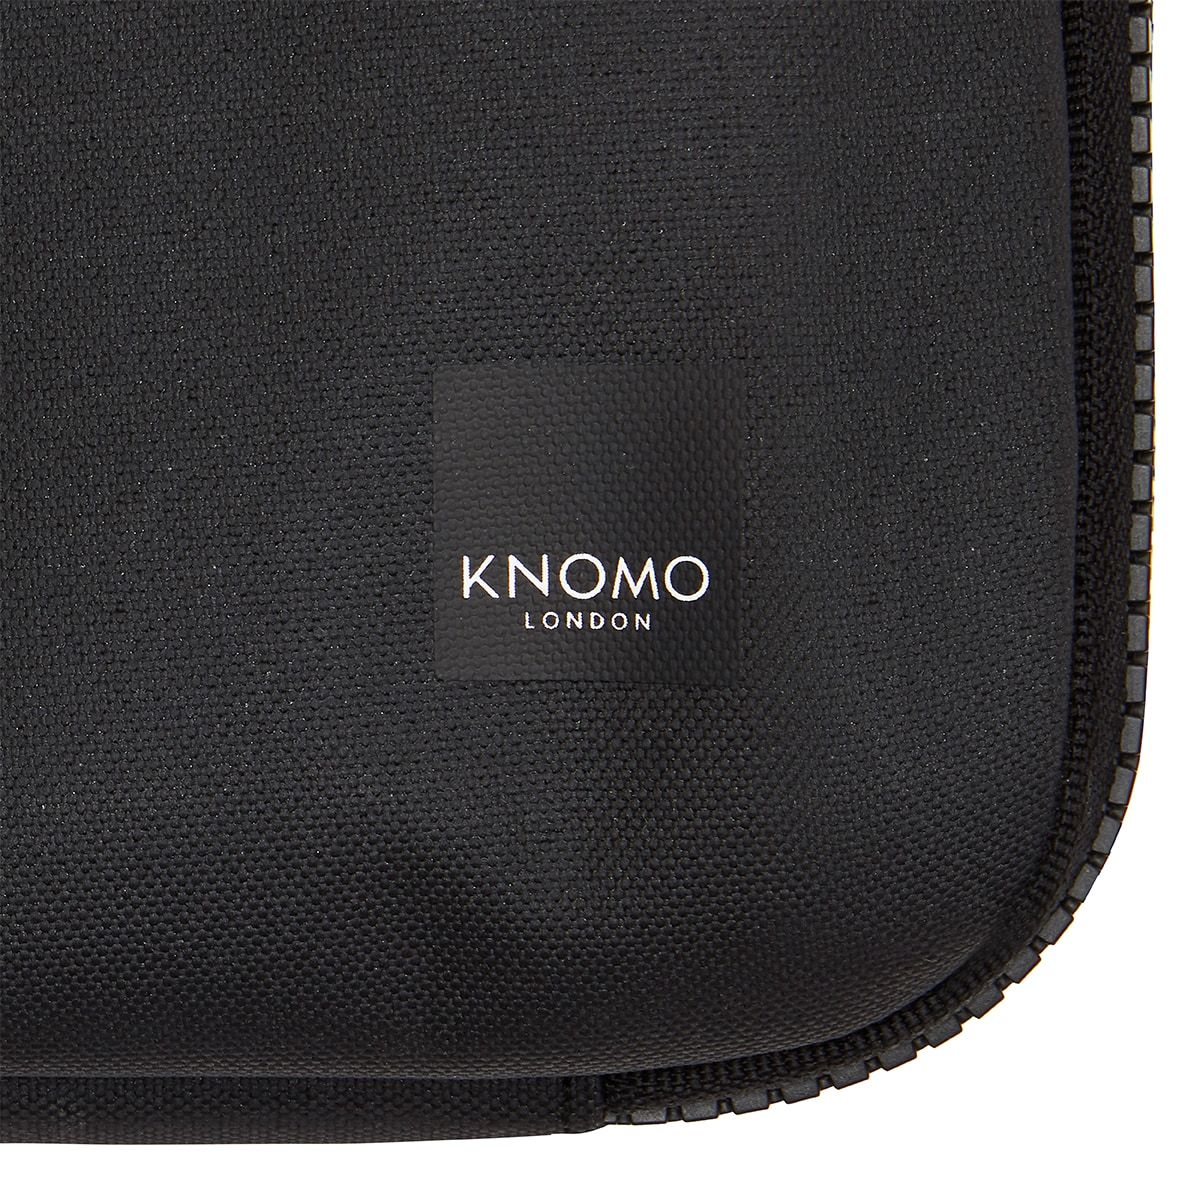 "KNOMO Thames Knomad Organiser Tech Organiser Close Up Logo 13"" -  Black 